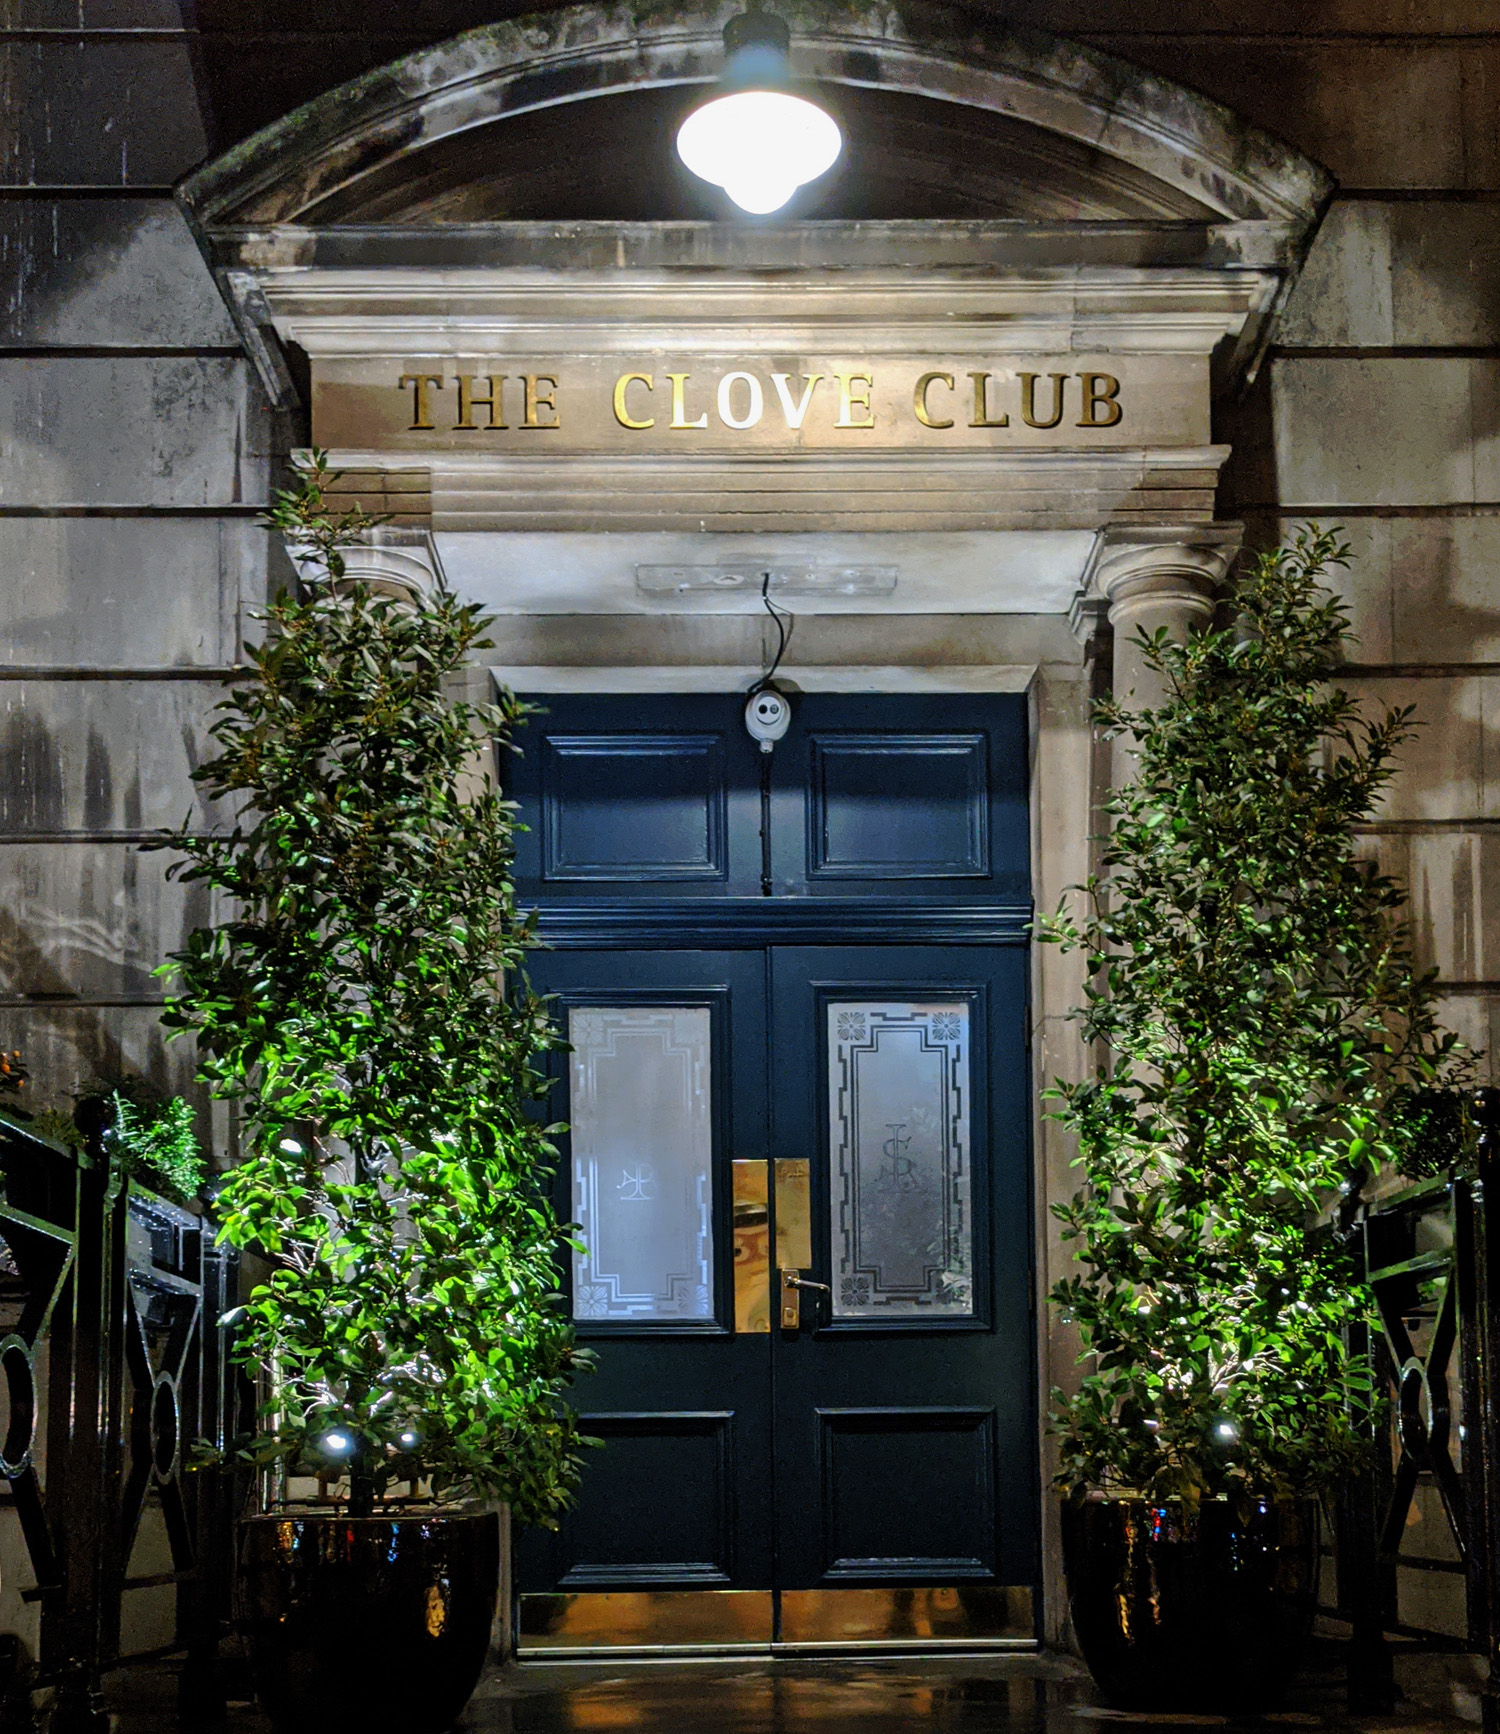 Entrance to the Clove Club